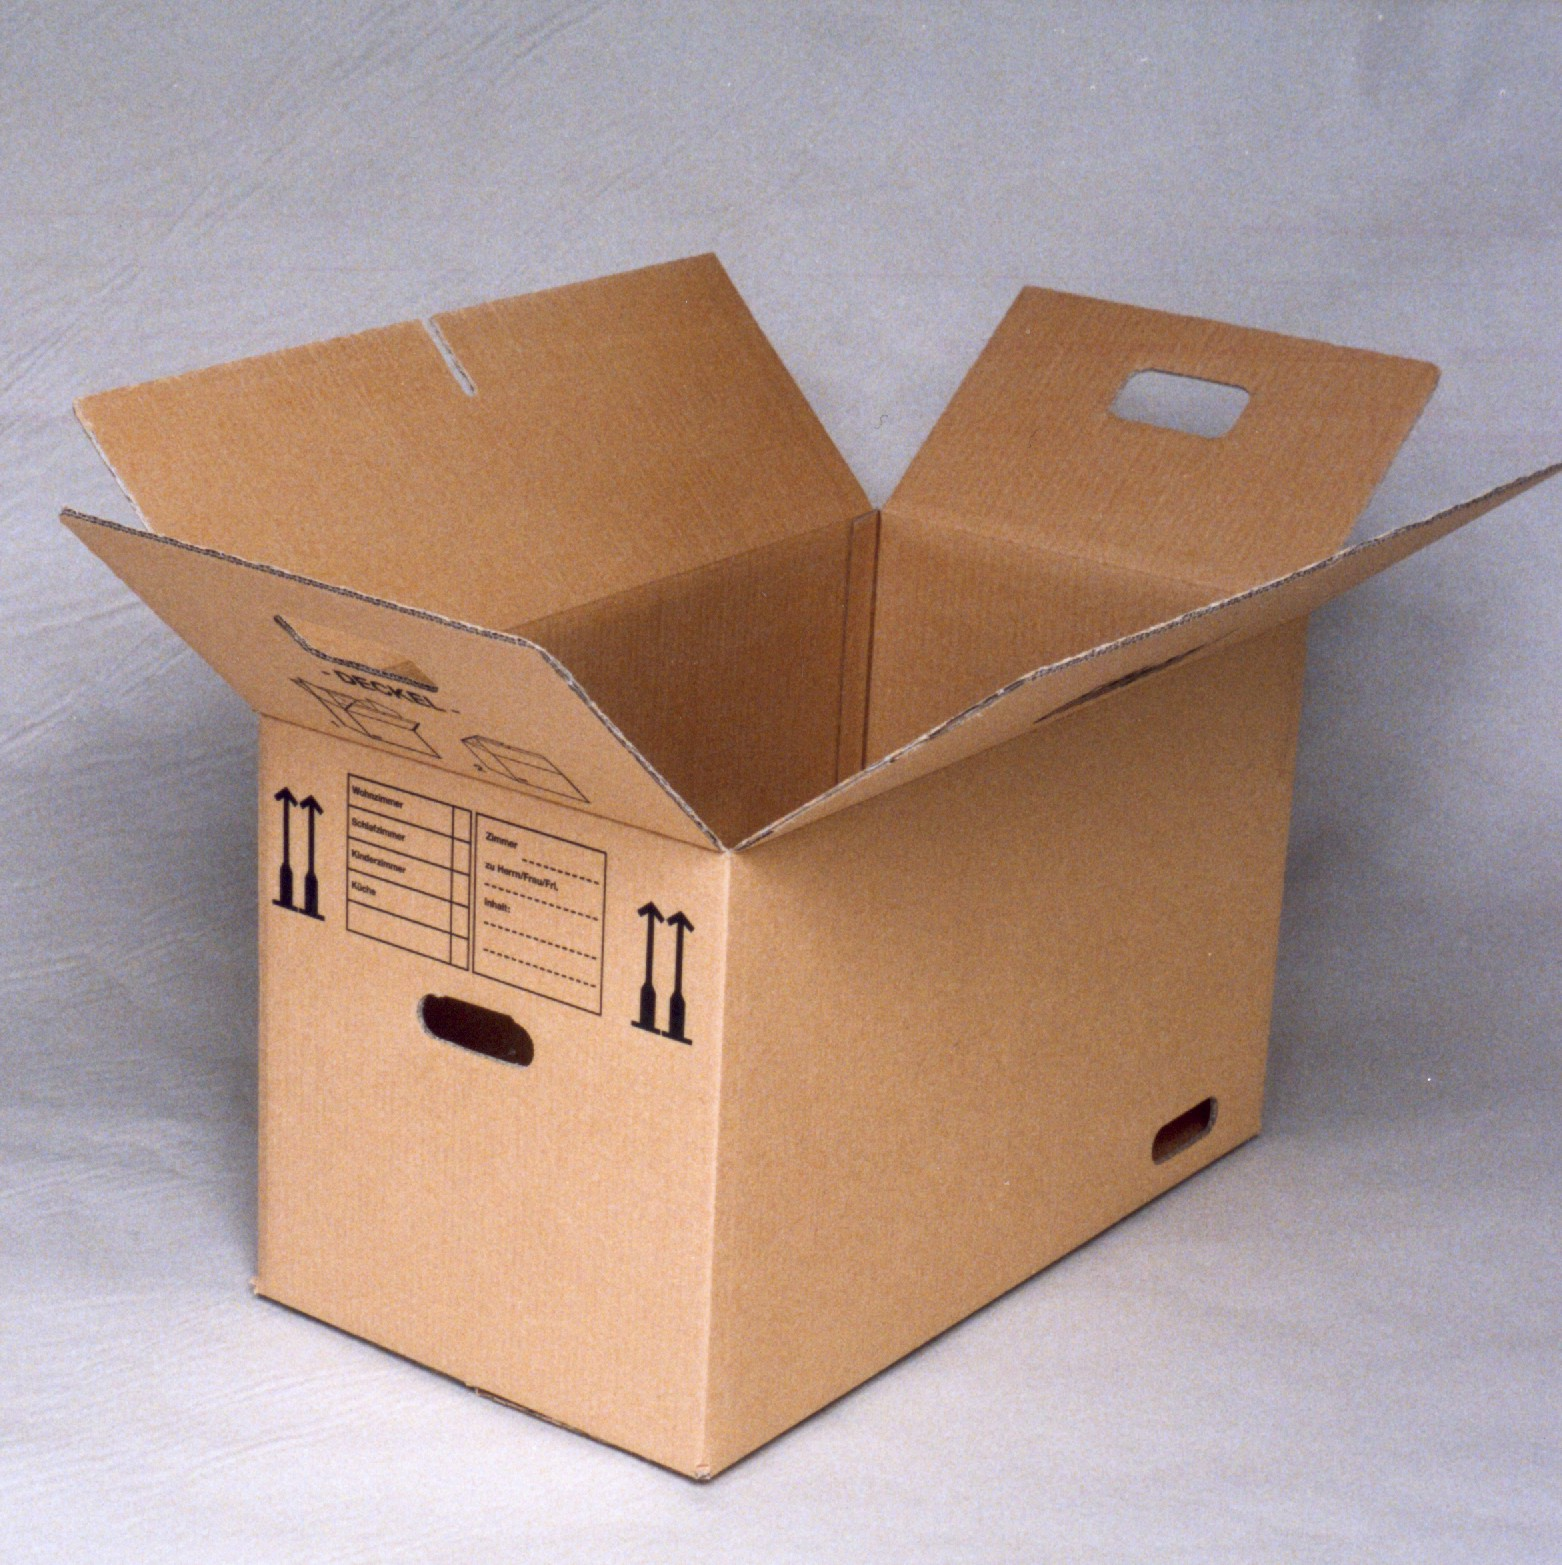 80aa2dcf034a5 Corrugated box design - Wikipedia